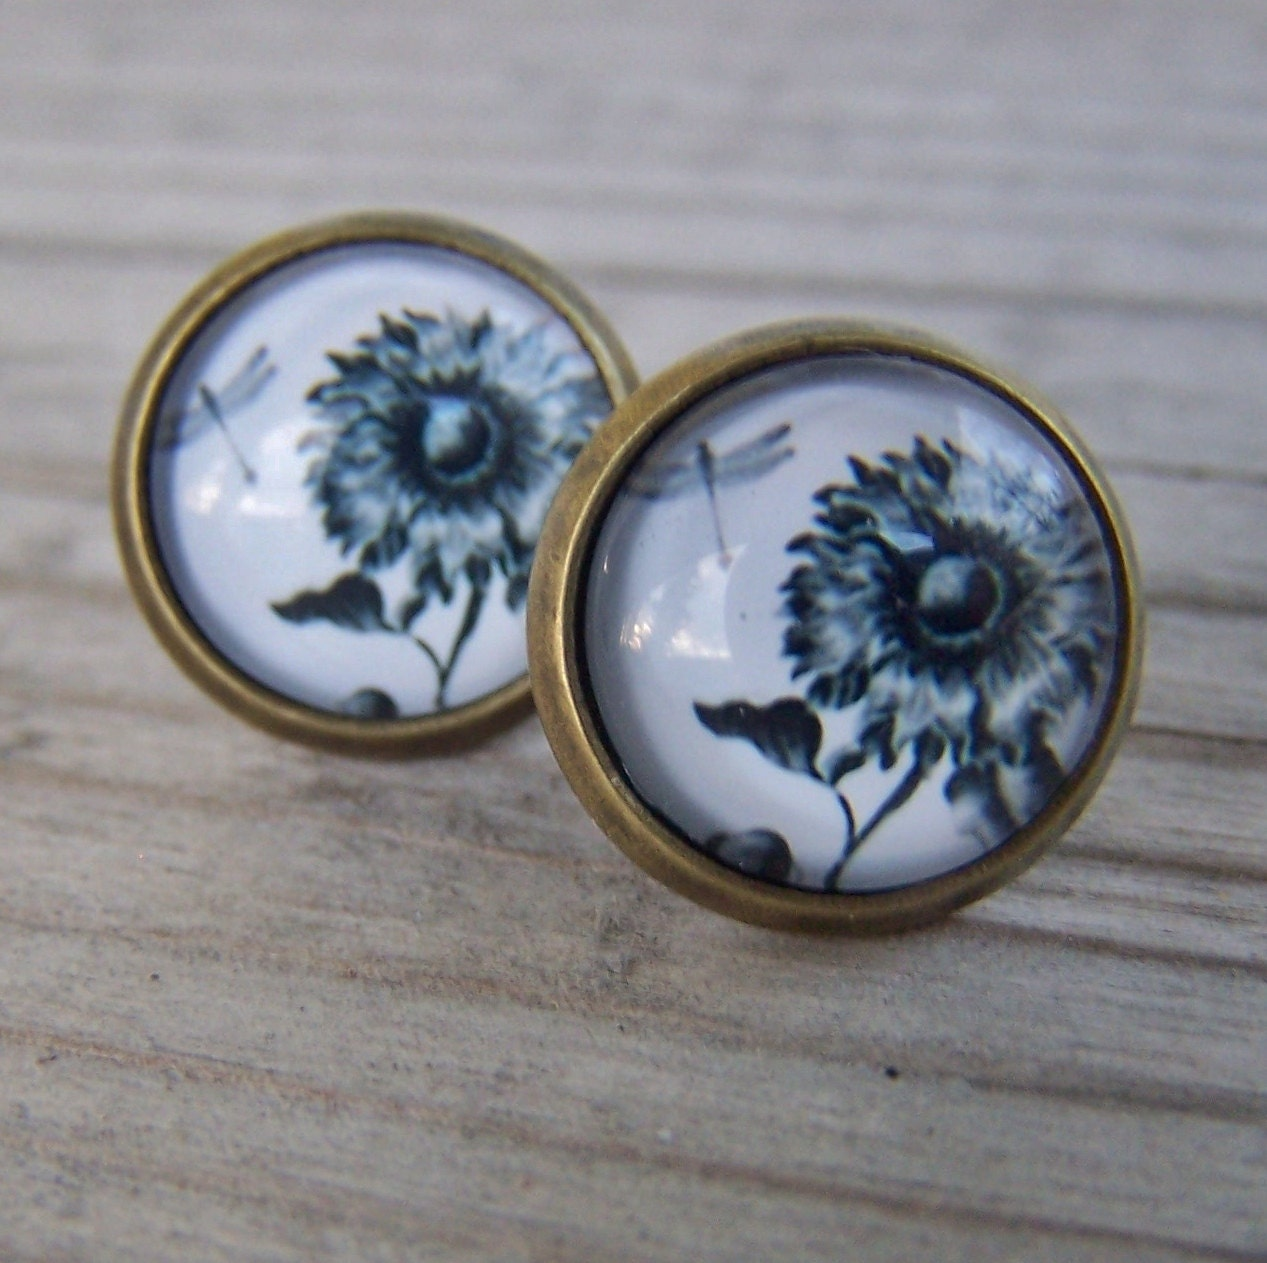 Glass Dome Earrings 12mm Black and White Flowers - gristmilldesigns